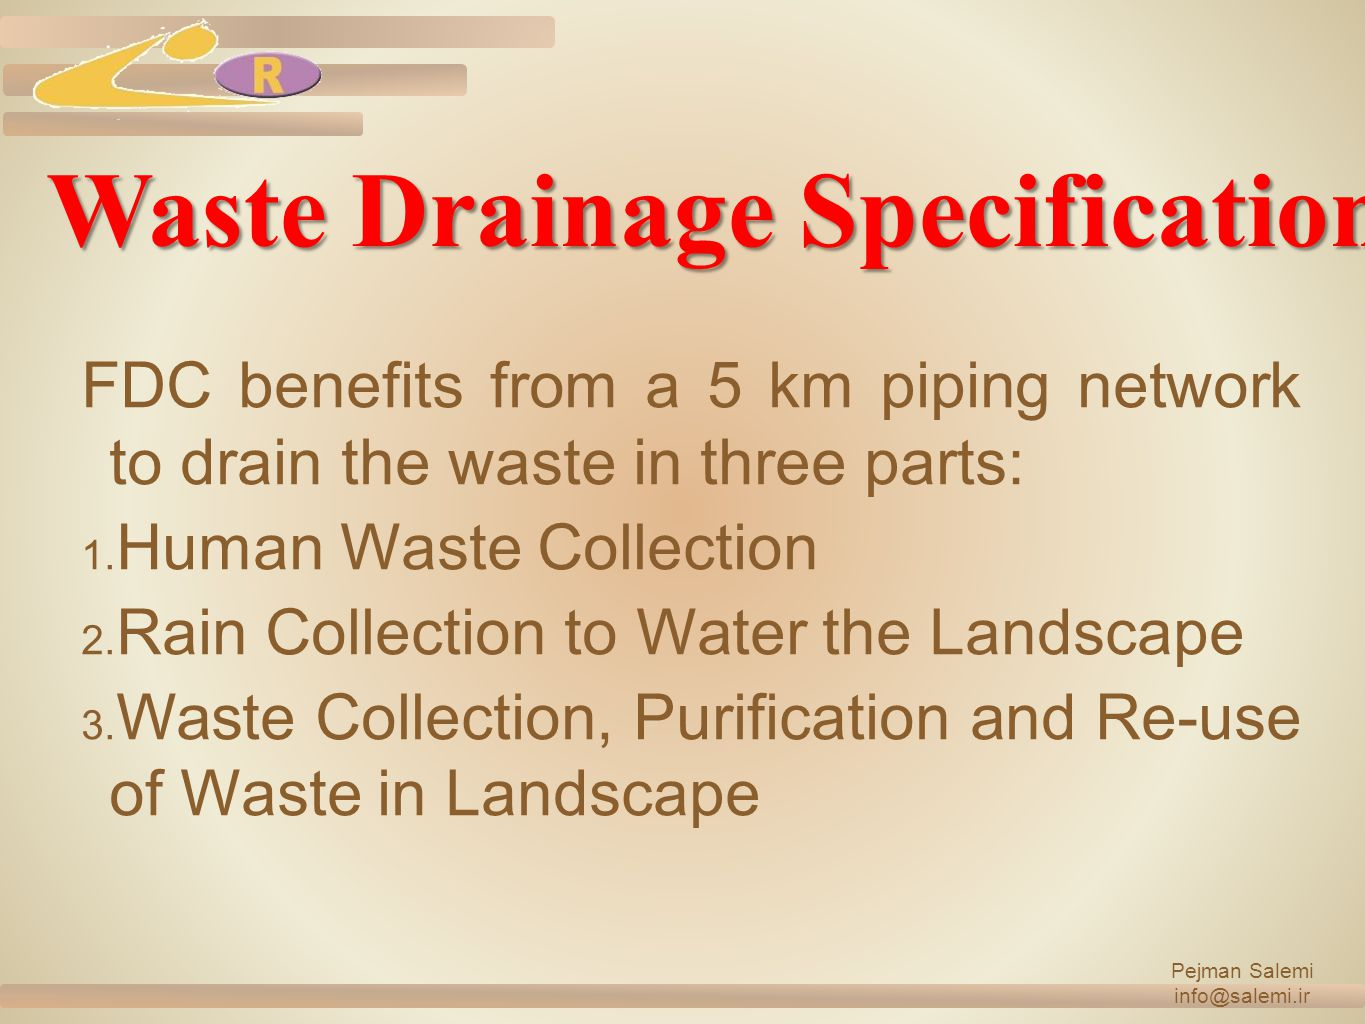 Waste Drainage Specification FDC benefits from a 5 km piping network to drain the waste in three parts: 1.